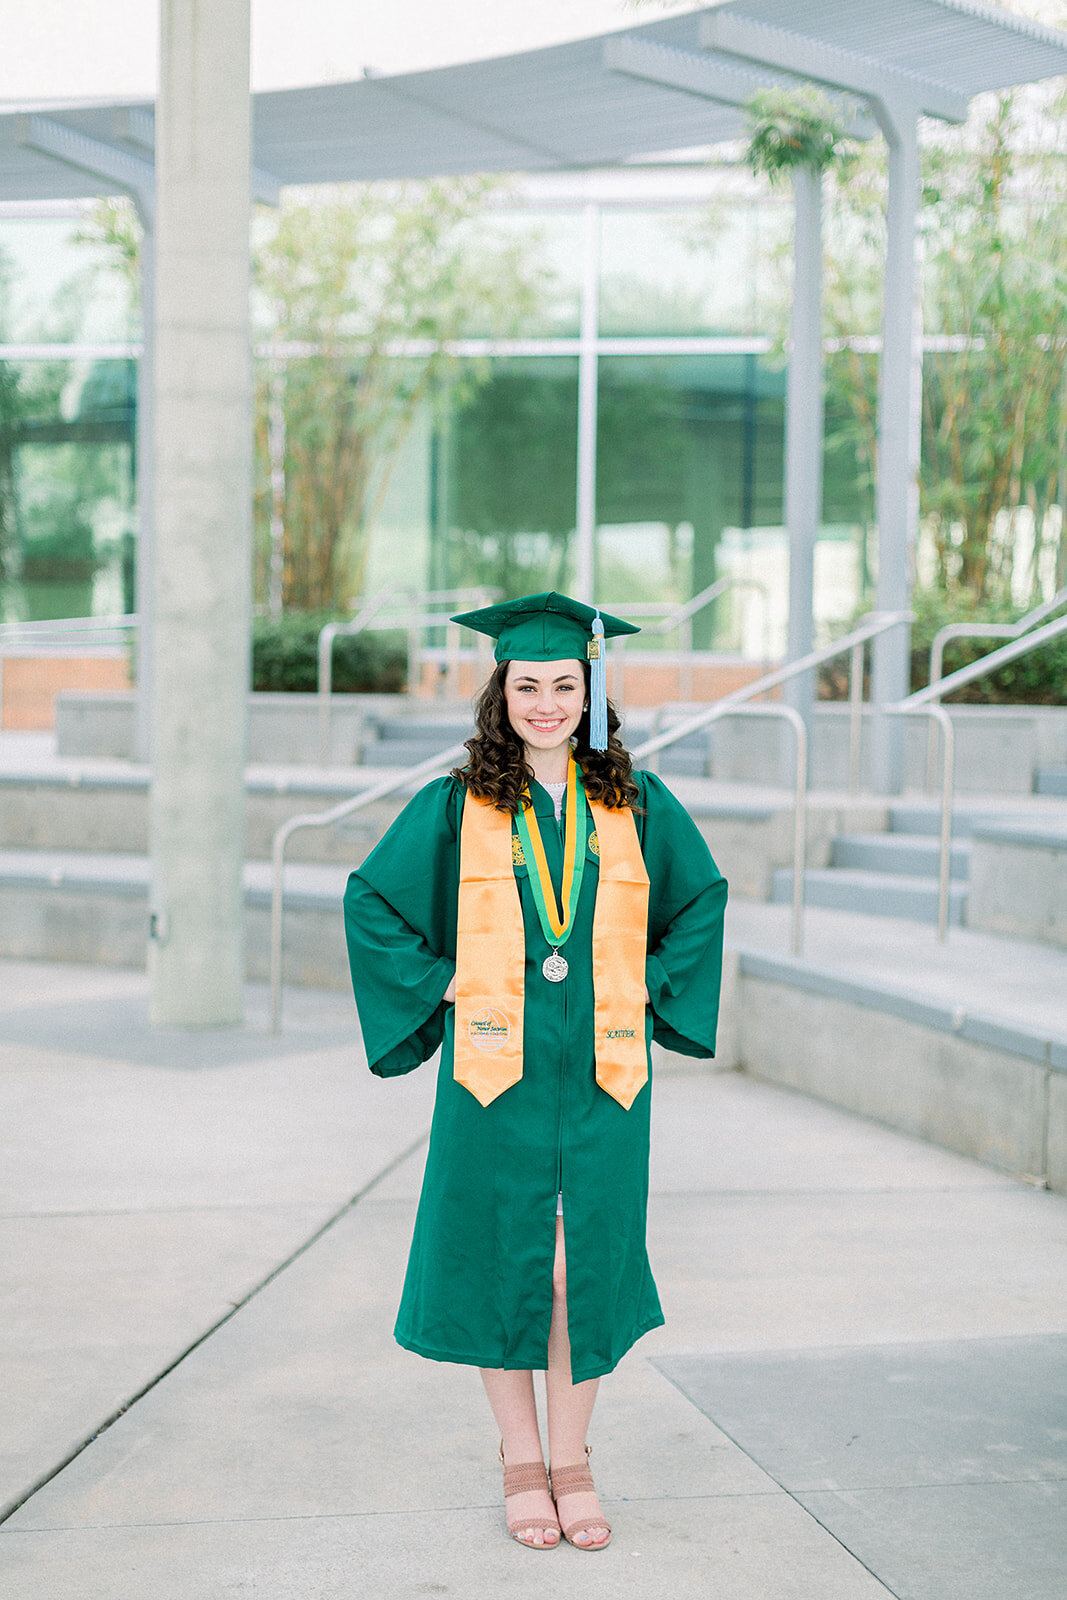 Cassidy Nathanson USF Tampa Senior Portrait Photographer Casie Marie Photography-71